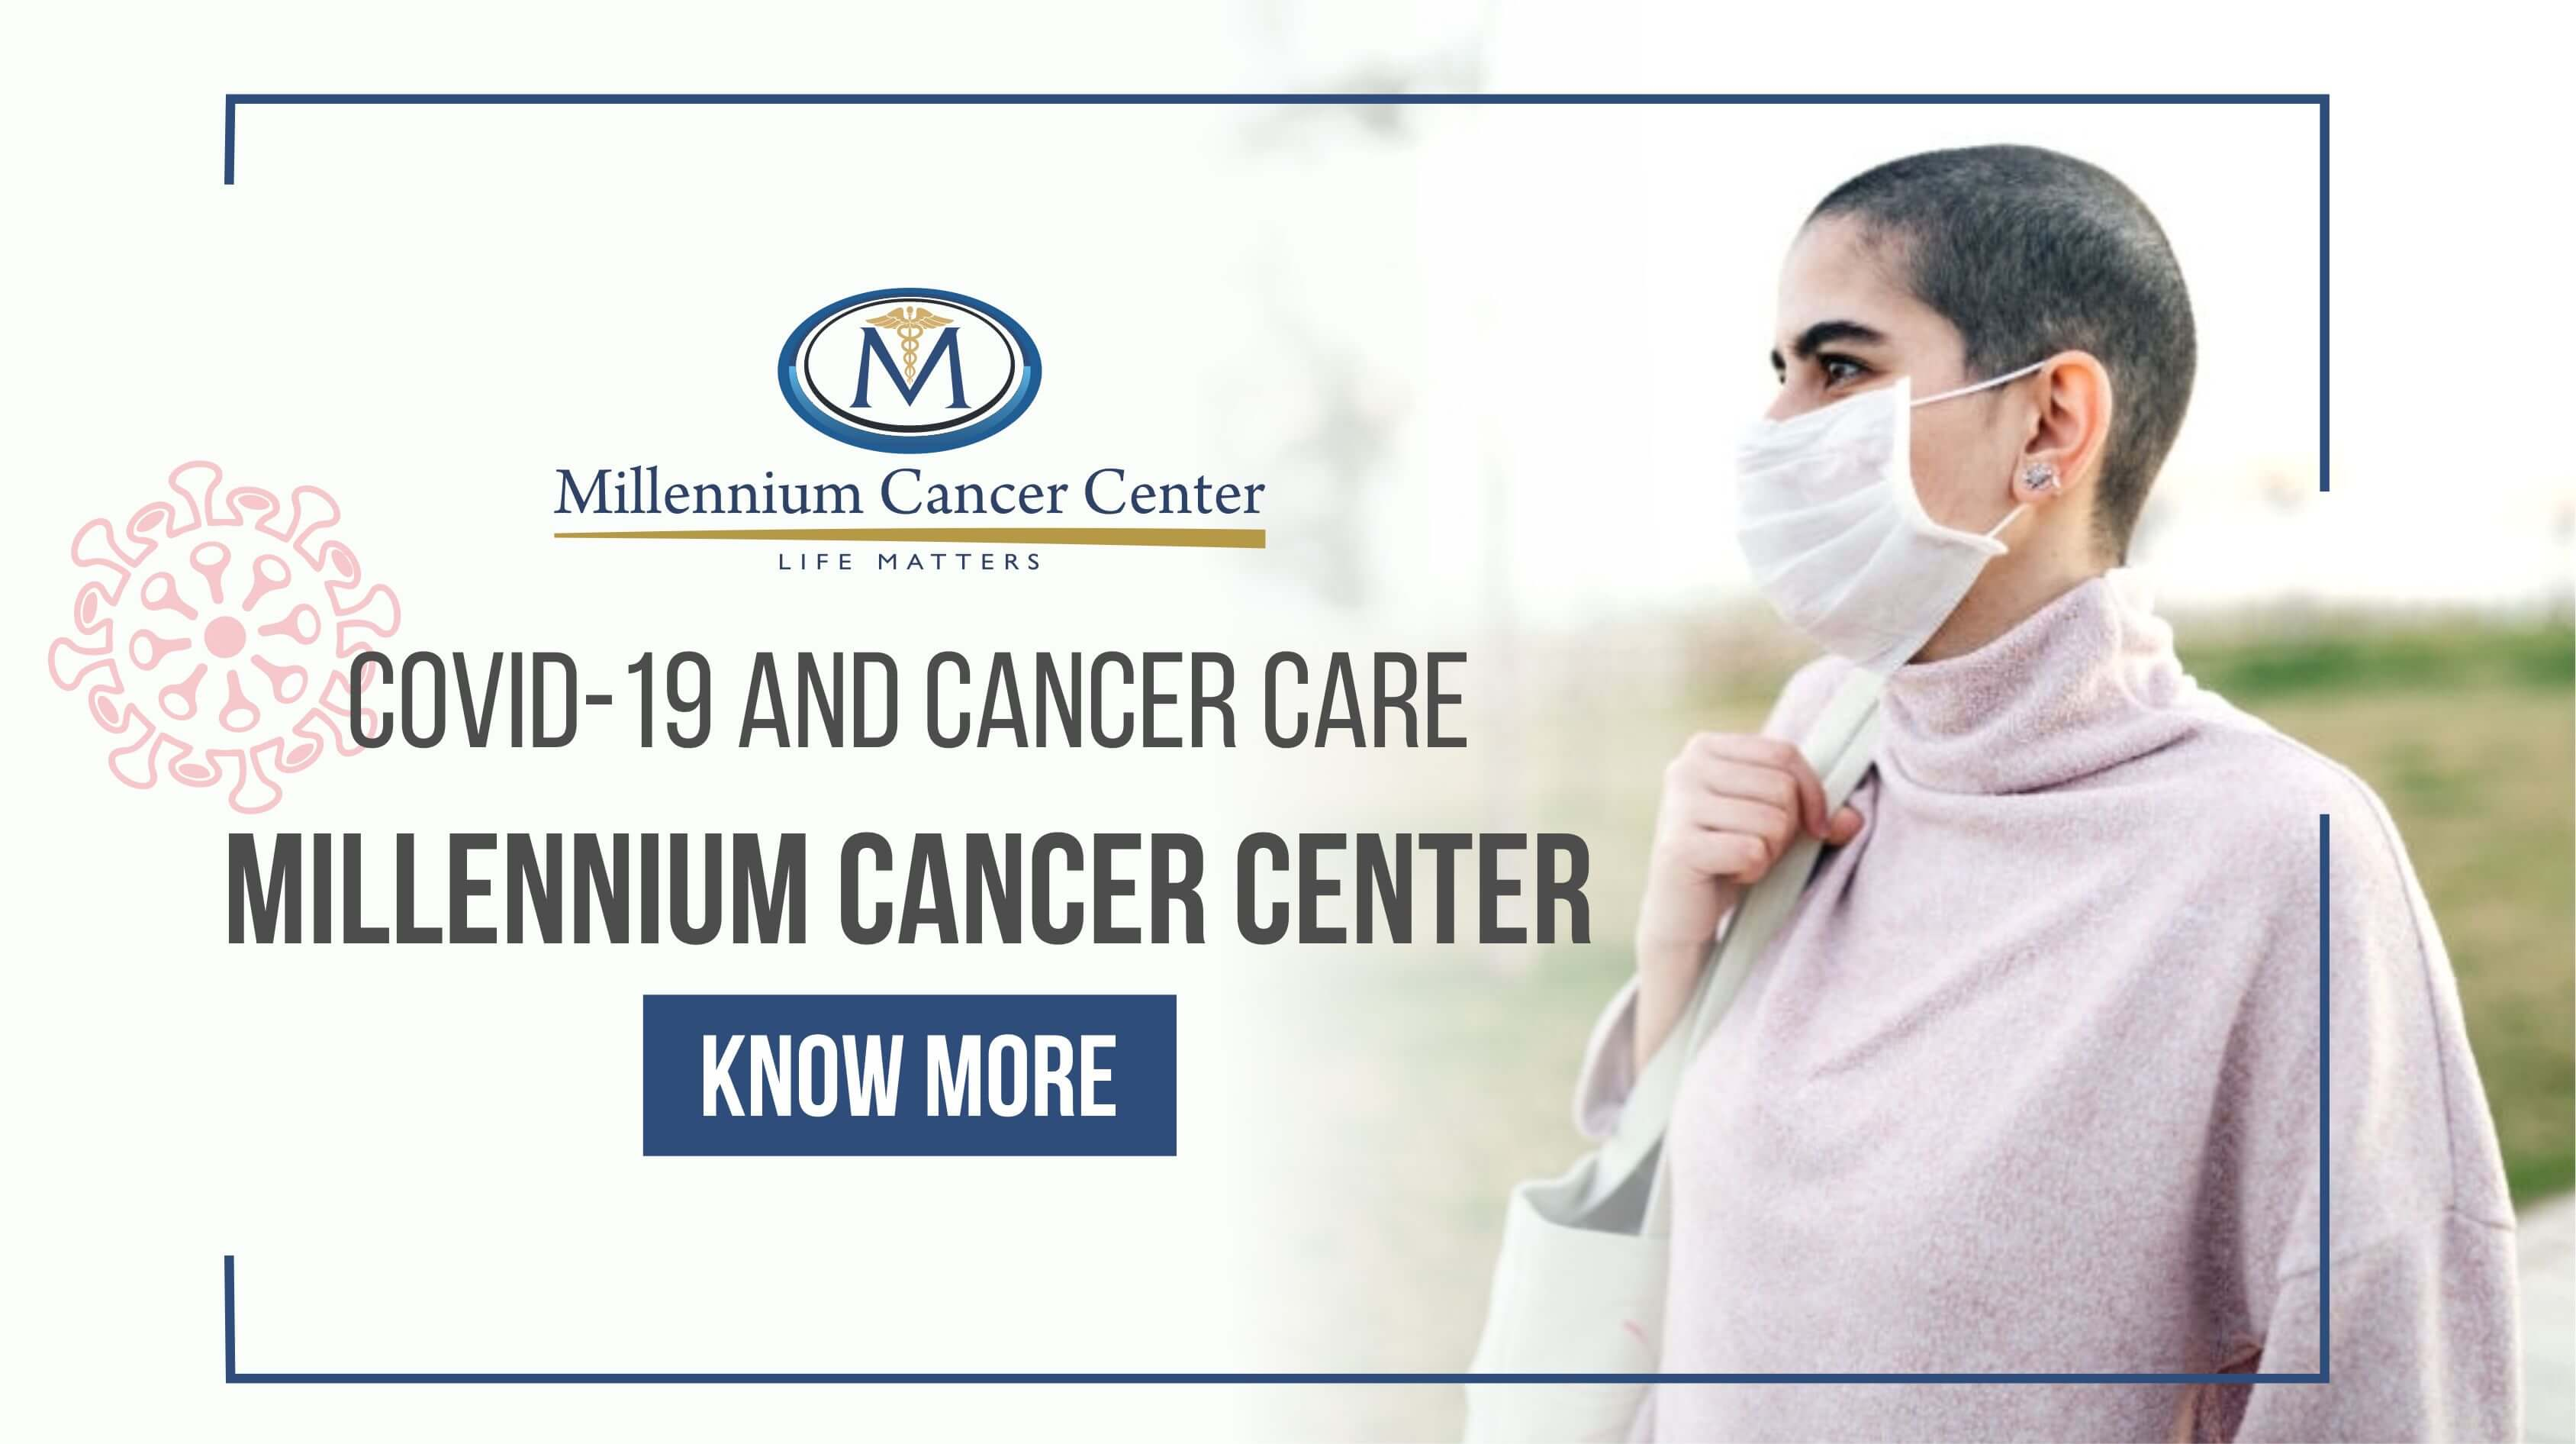 COVID-19 AND CANCER CARE - AT MILLENNIUM CANCER CENTER2